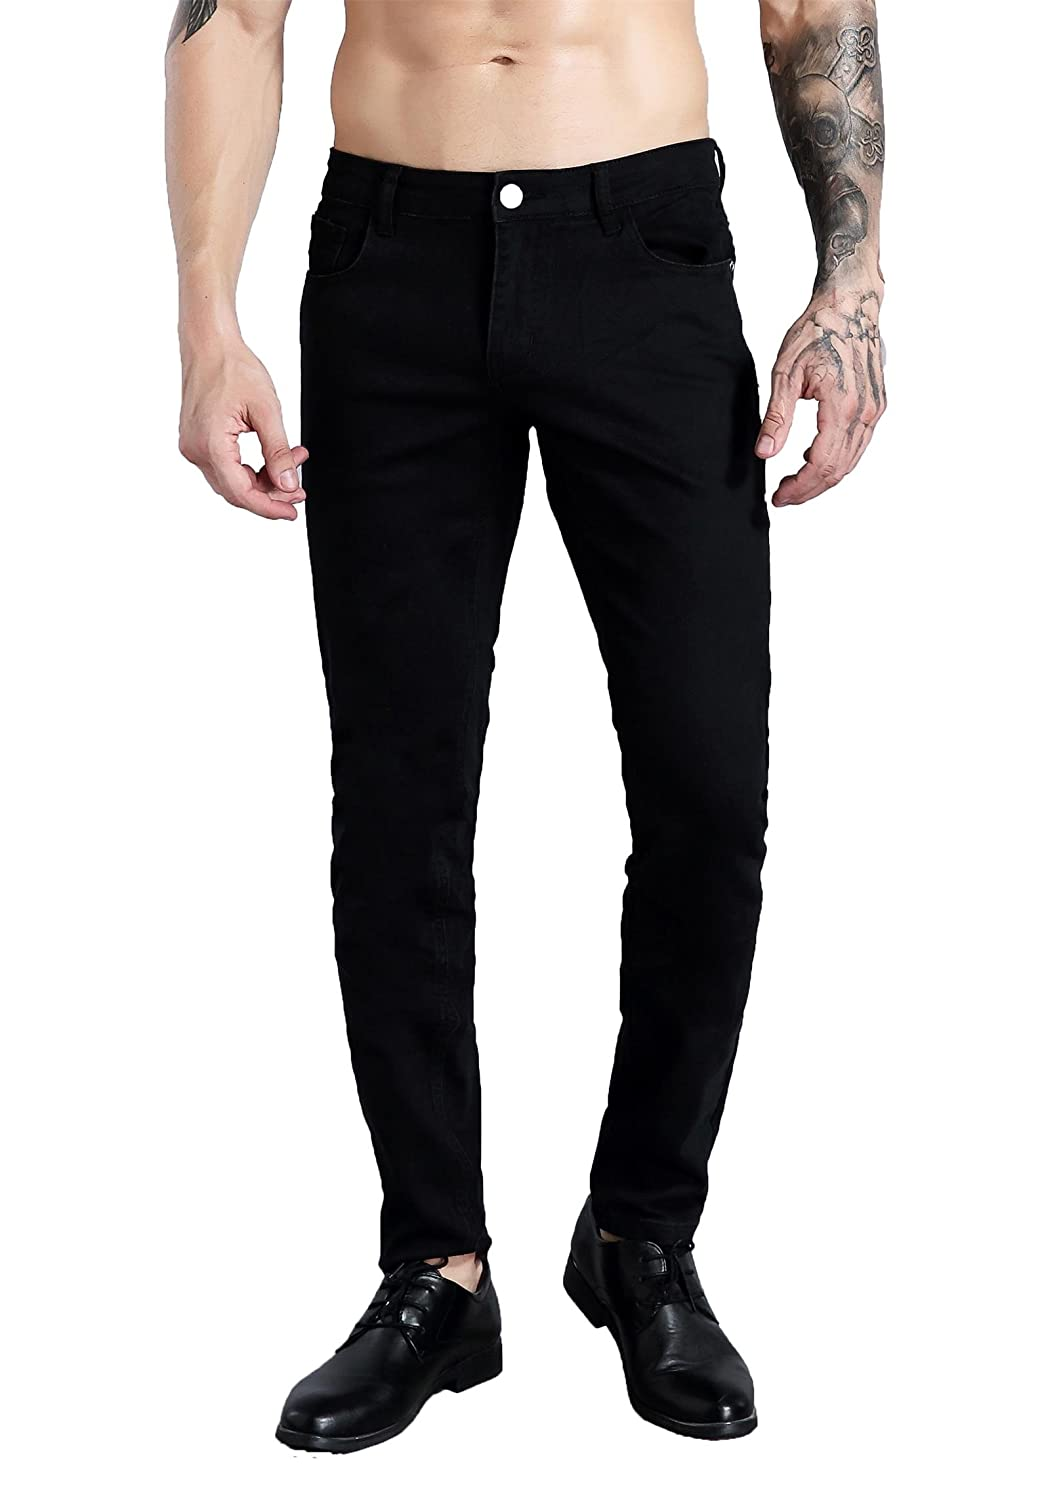 ZLZ Mens Slim Fit Stretch Comfy Fashion Denim Jeans Pants